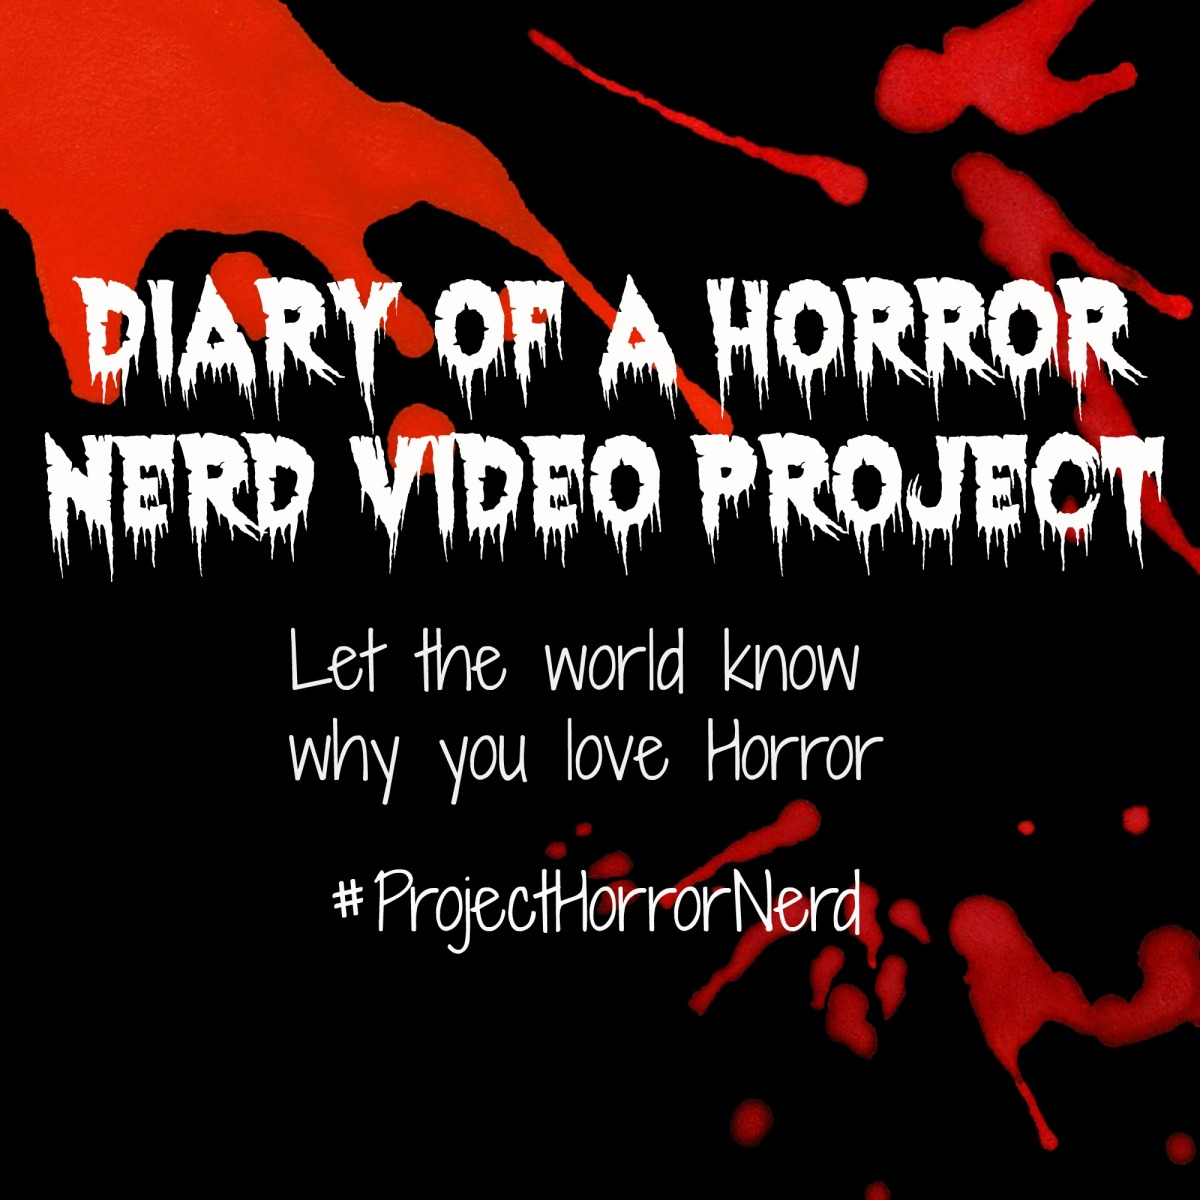 little blog of horror diary of a horror nerd video project